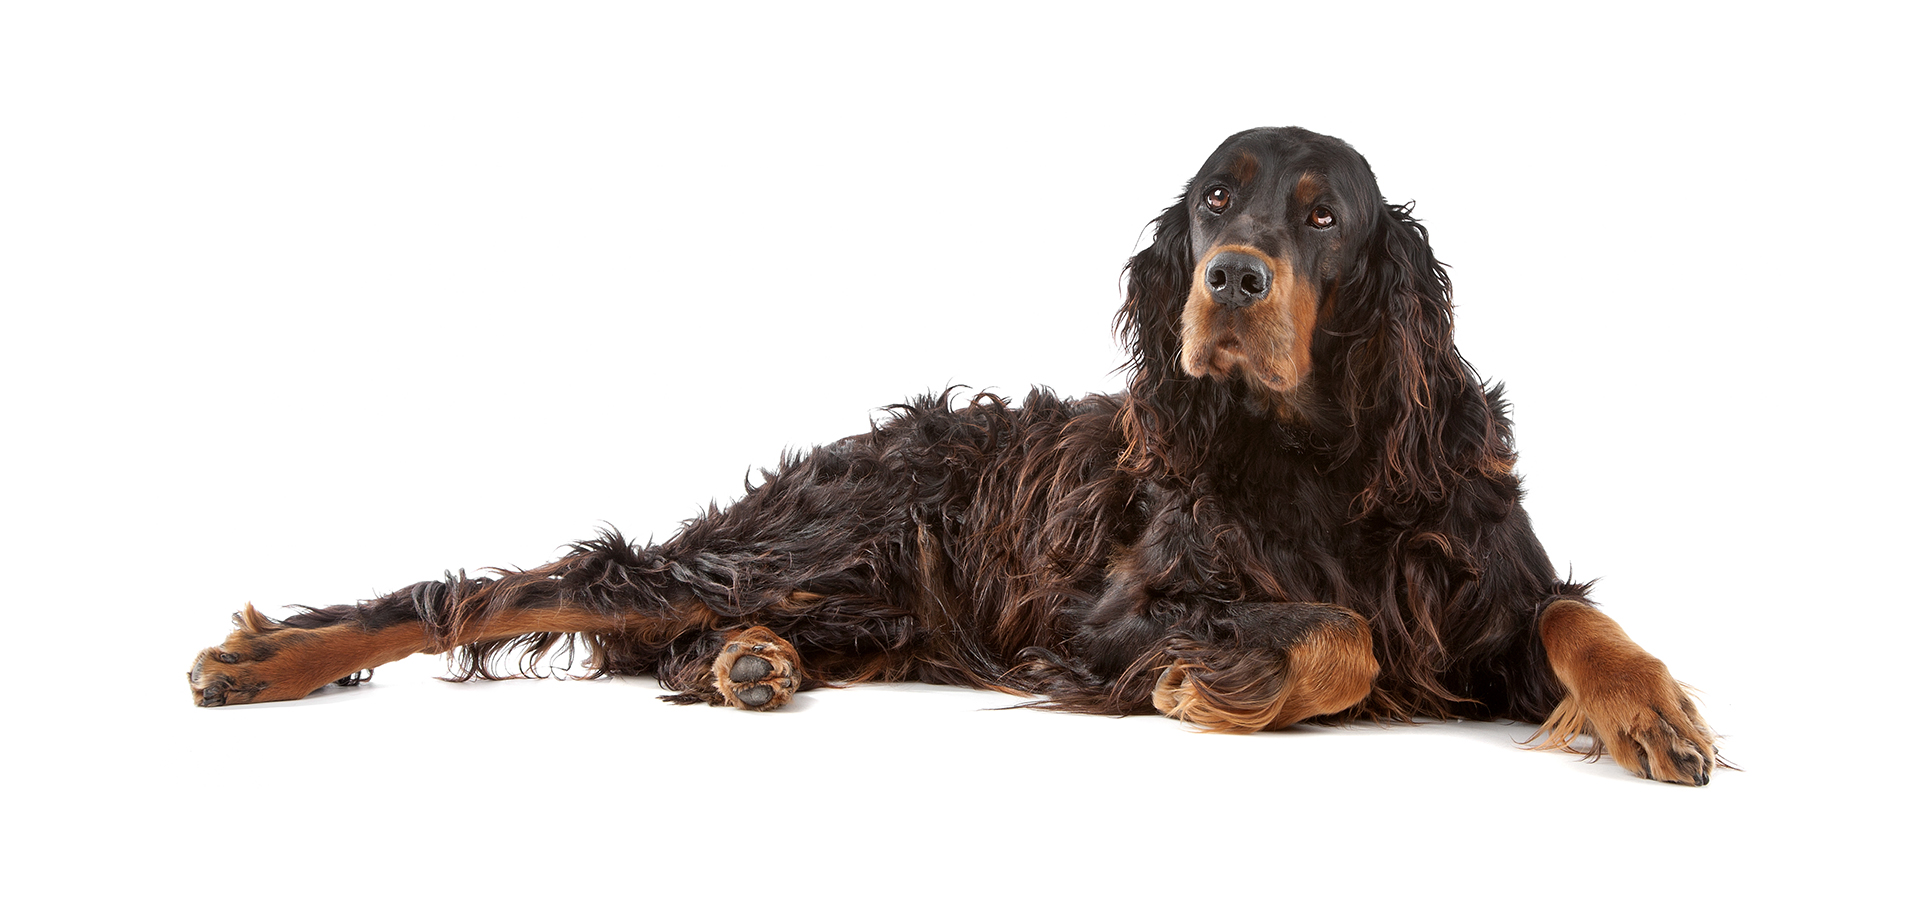 Breed Gordon Setter